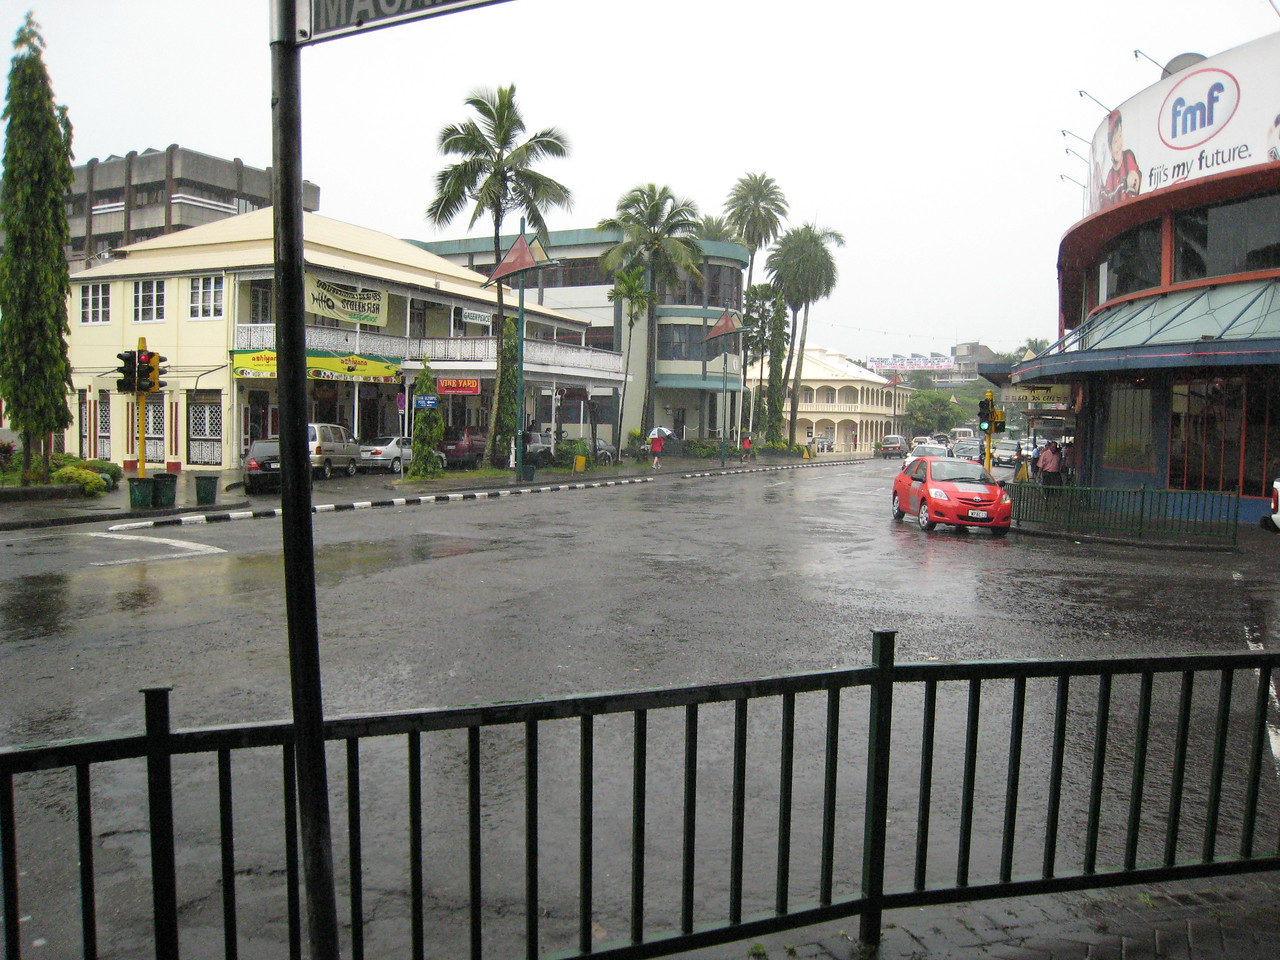 Downtown Suva, the capital of Fiji